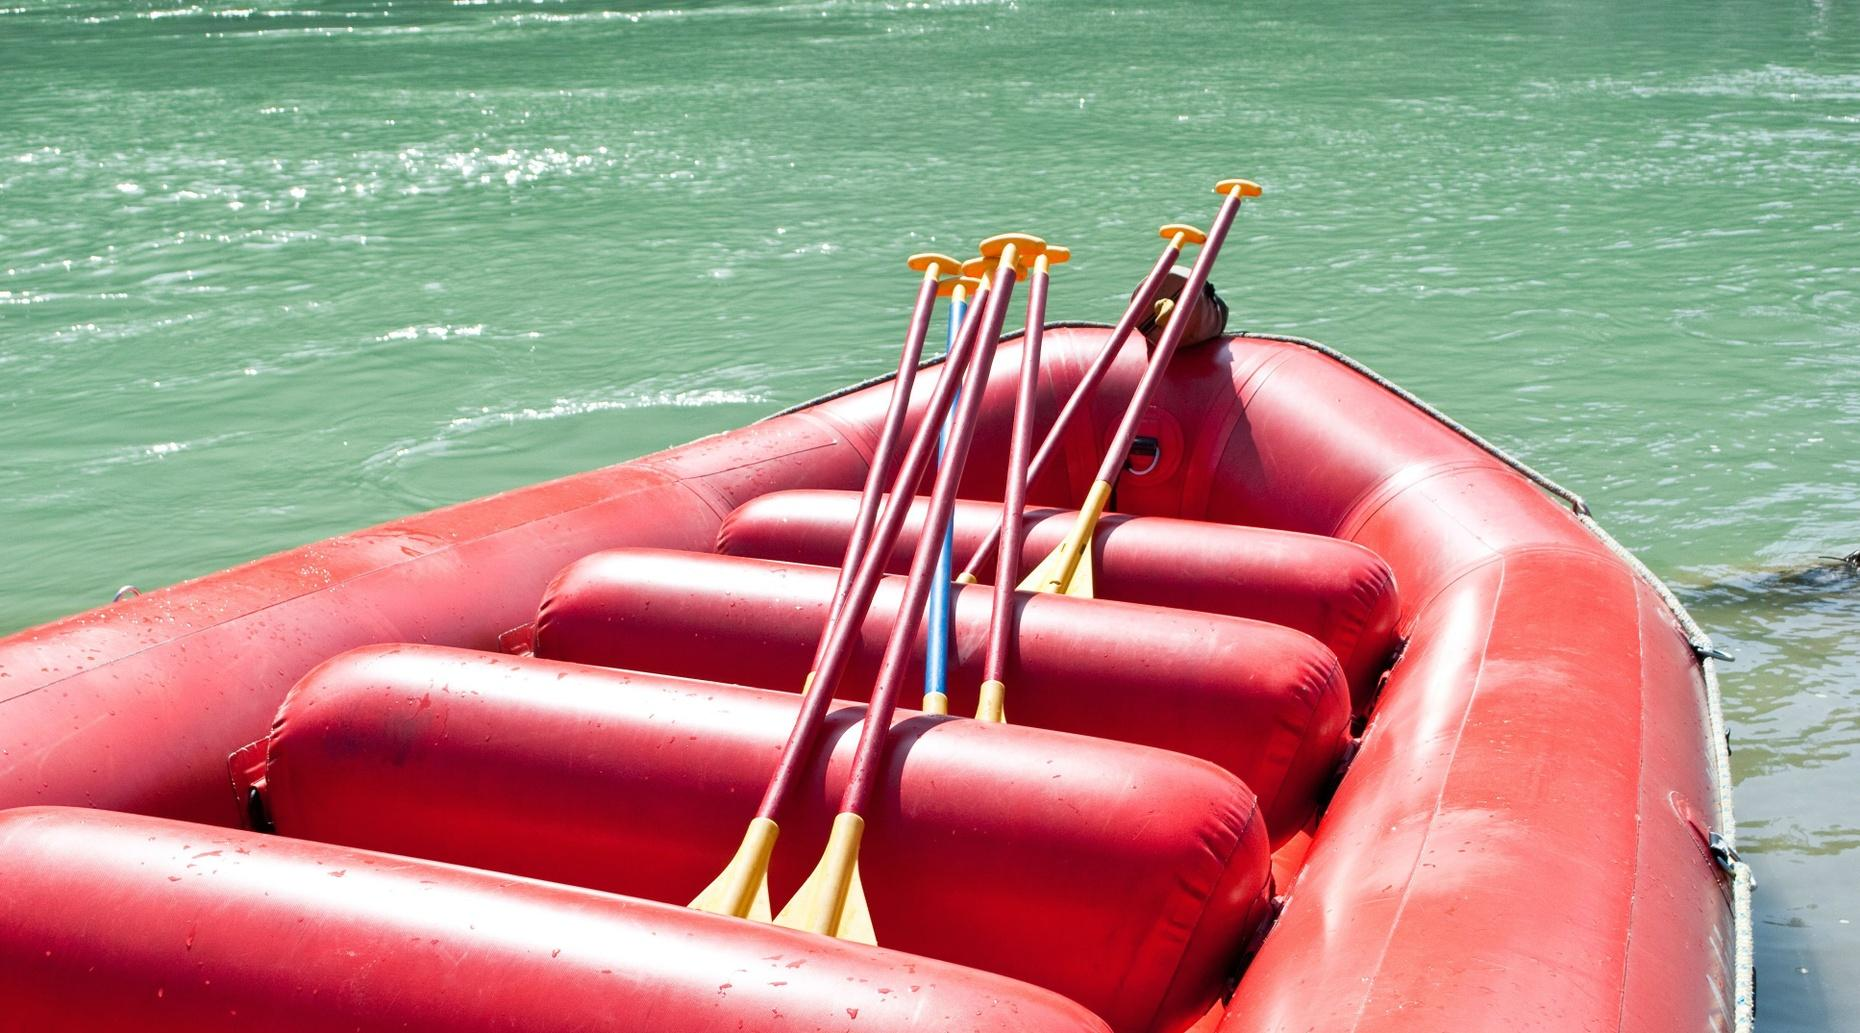 Rafting Summer Science Adventure from Monticello